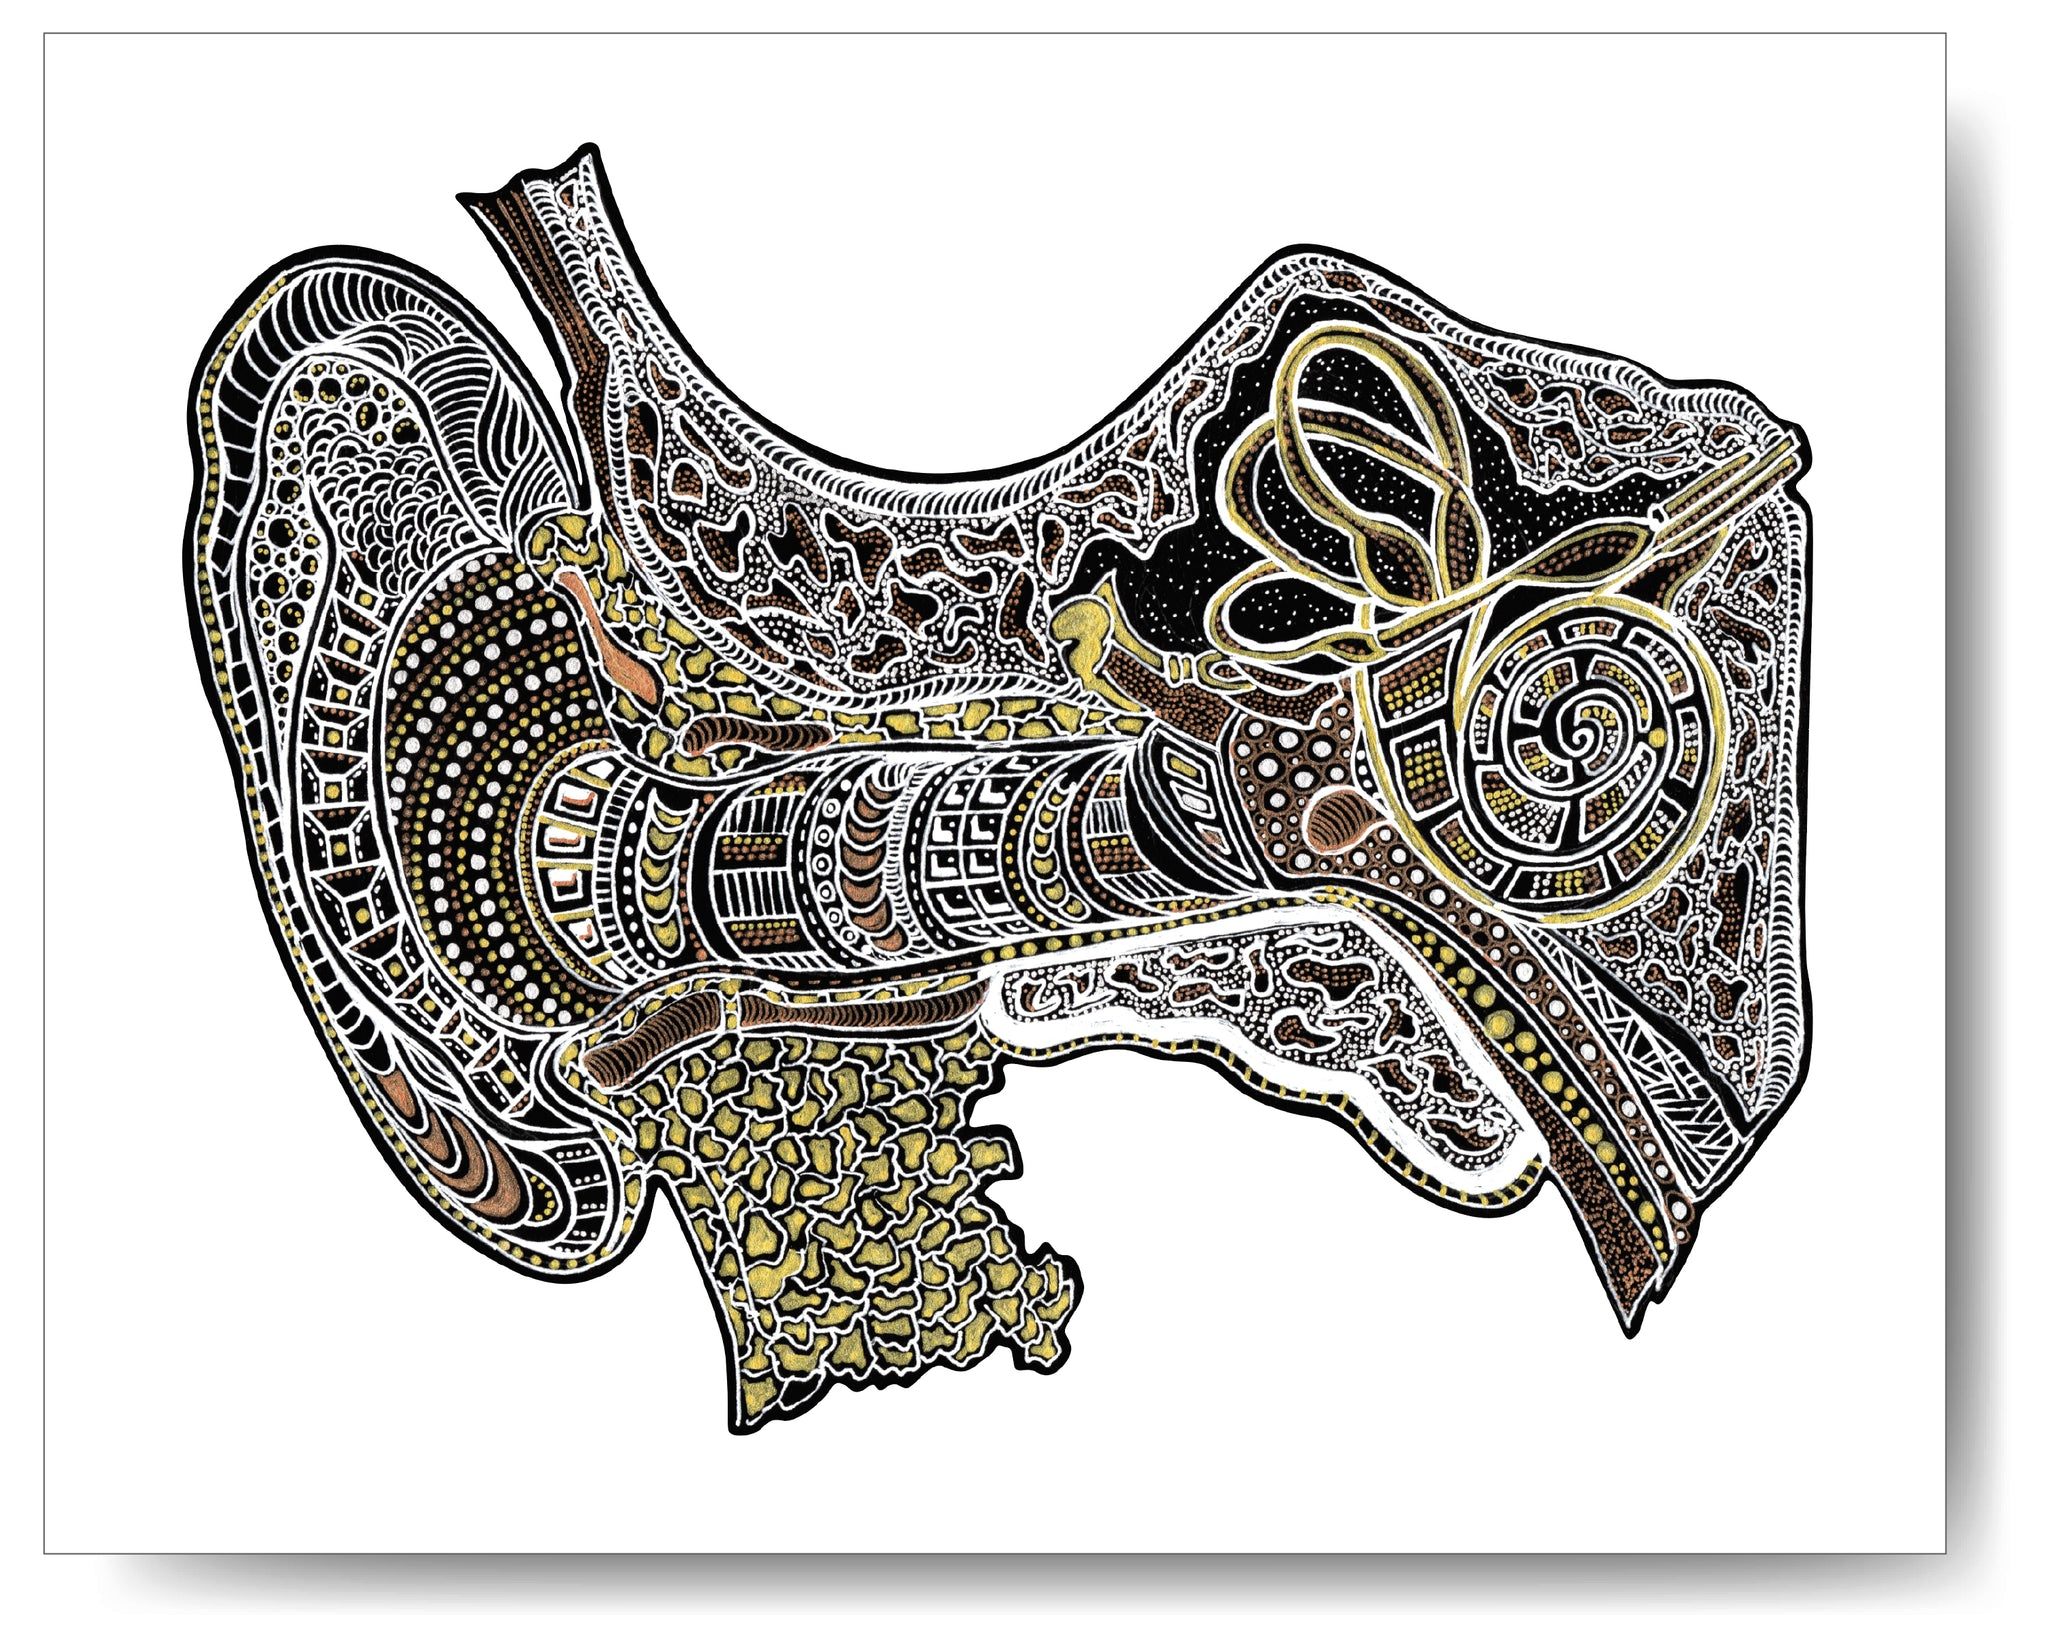 Metallic Ear Canal (Inner Ear) - 8x10 or 11x14